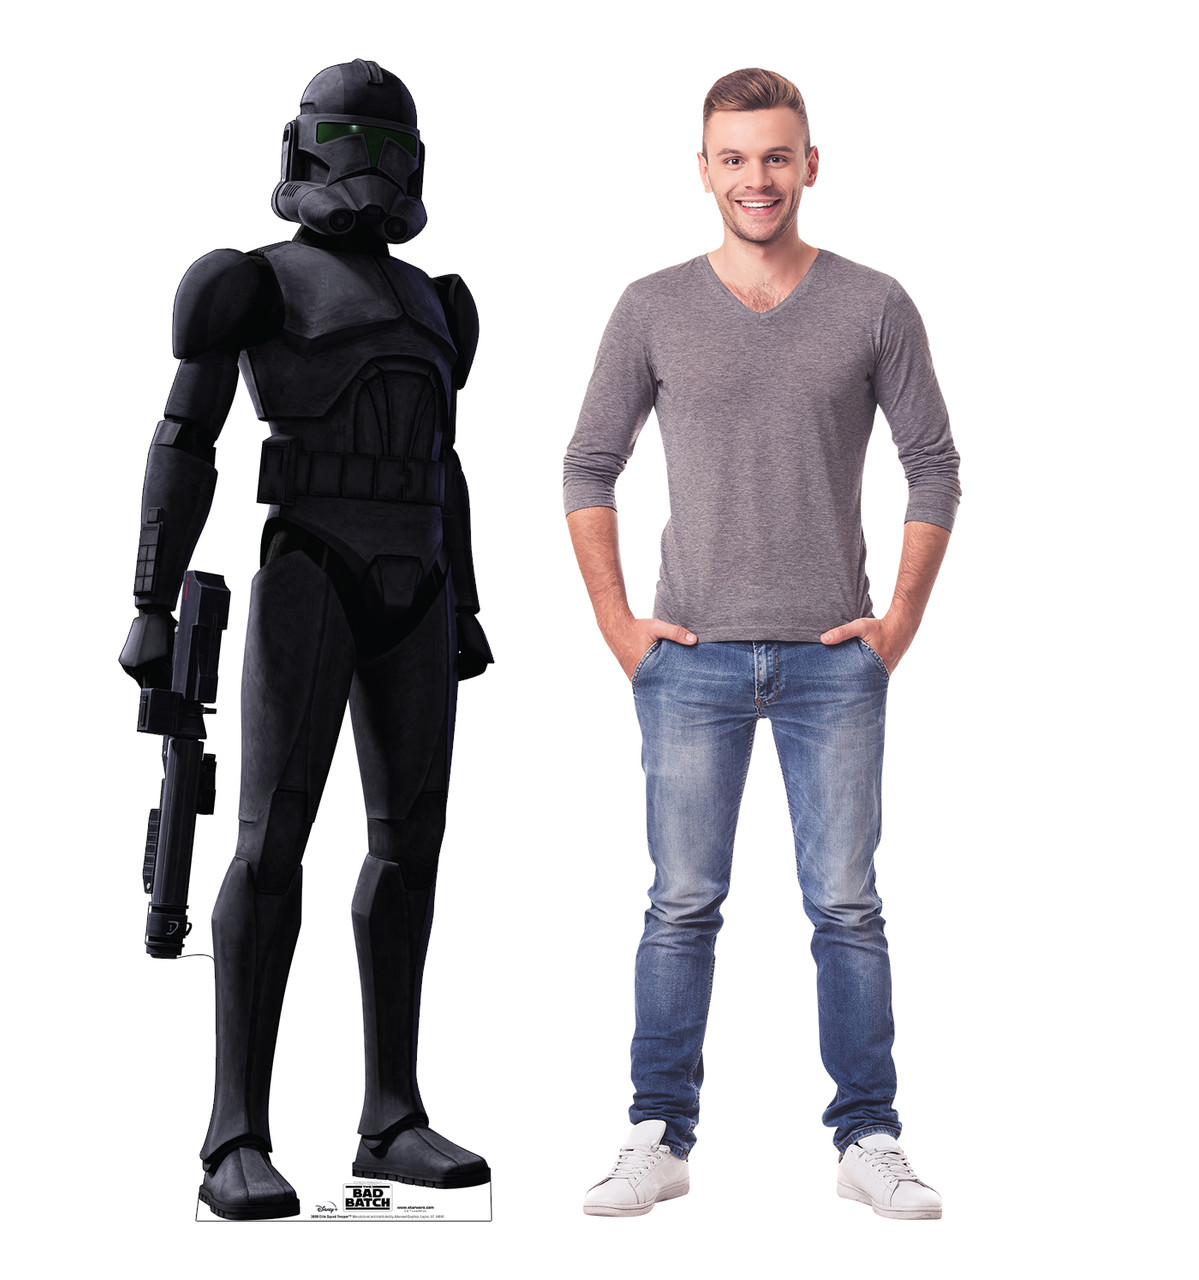 Life-size cardboard standee of Elite Squad Trooper from The Bad Batch on Disney+ with model.